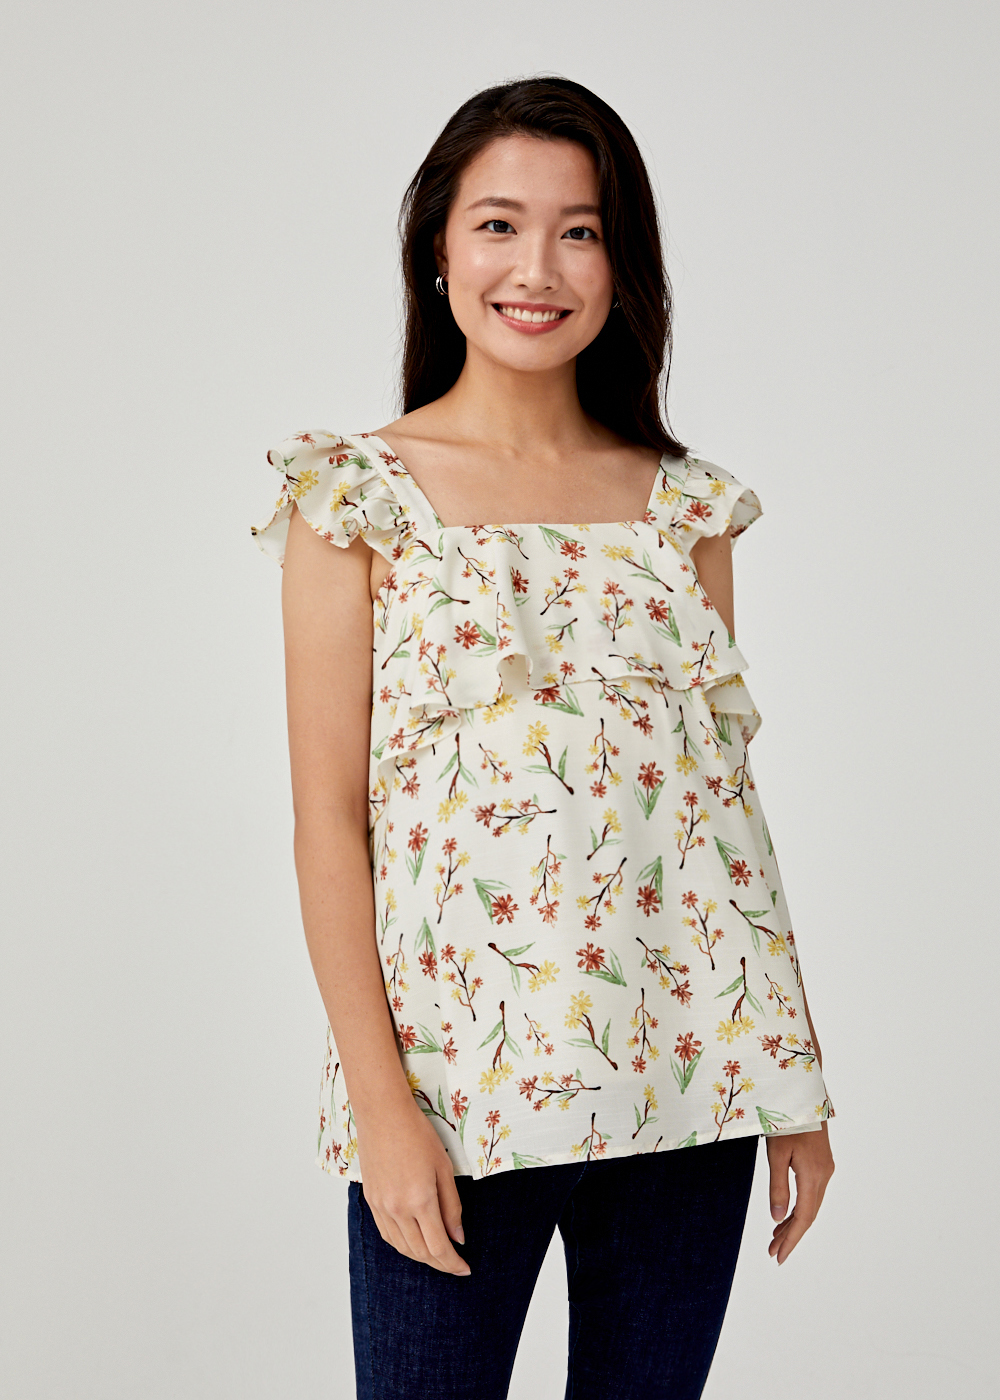 Larkyn Ruffle Top in Springtime Tisane